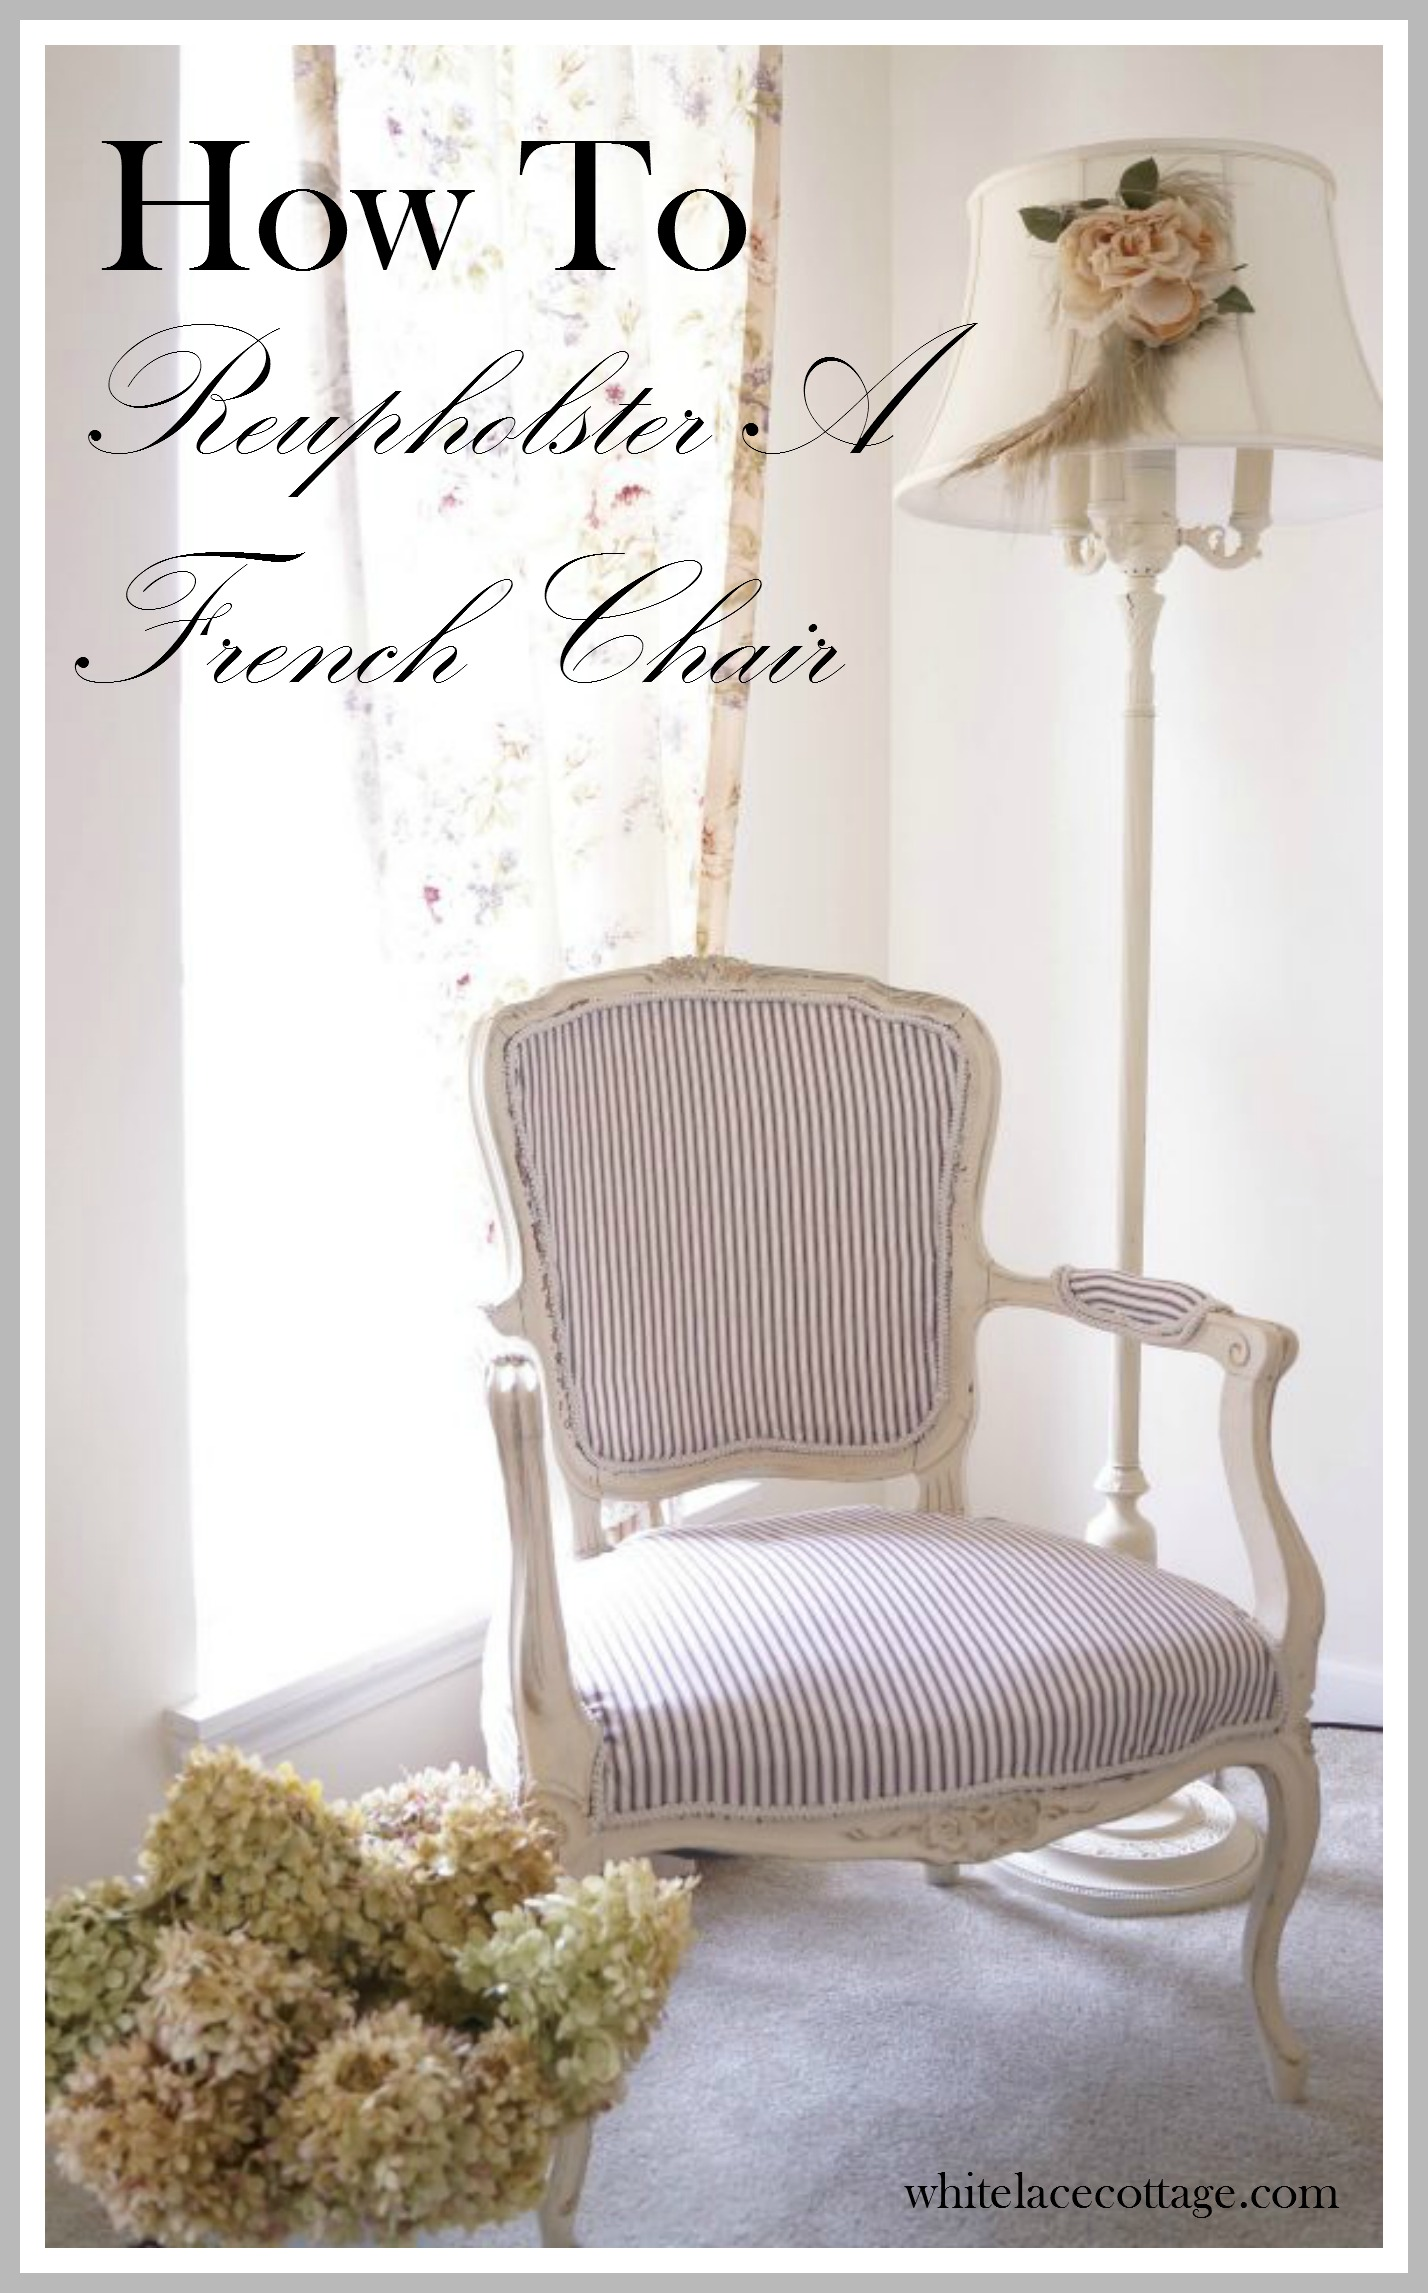 How To Easily Reupholster A French Chair  White Lace Cottage